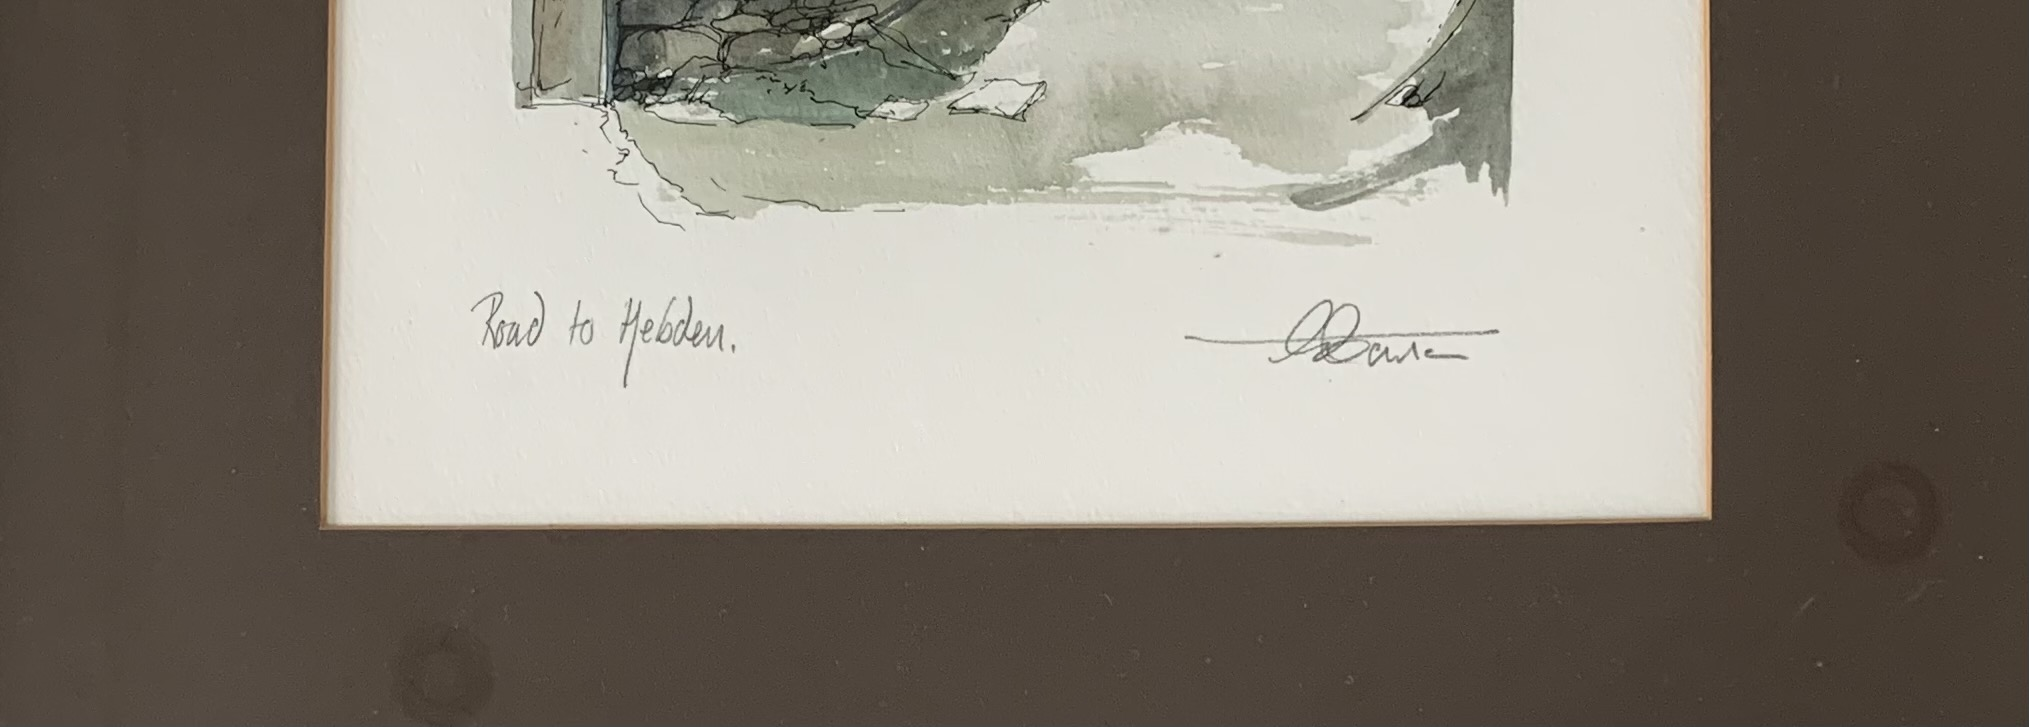 """Drawing/watercolour """"Road to Hebden"""", signed. Image 11"""" x 13"""", frame 18.5"""" x 22"""". Chantry House - Image 2 of 3"""